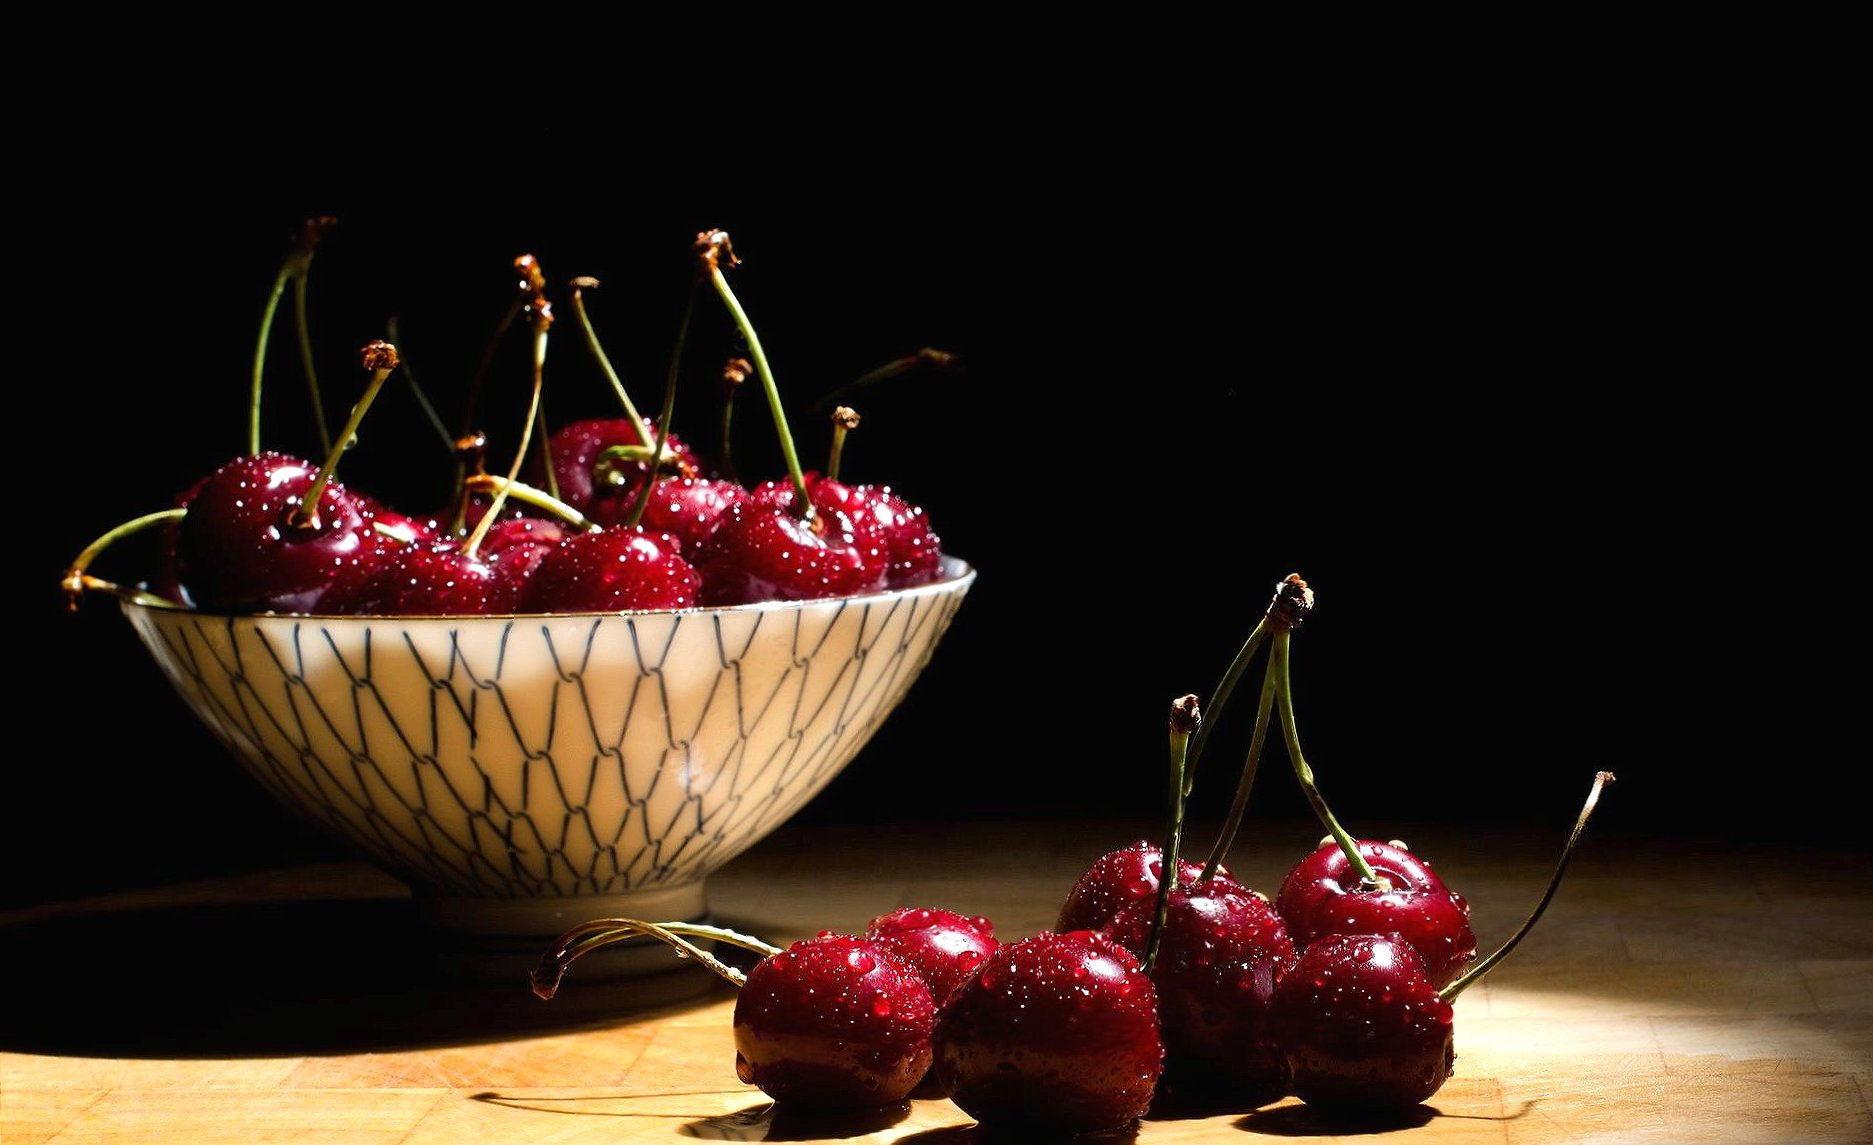 Cherries in a cup wallpapers HD quality